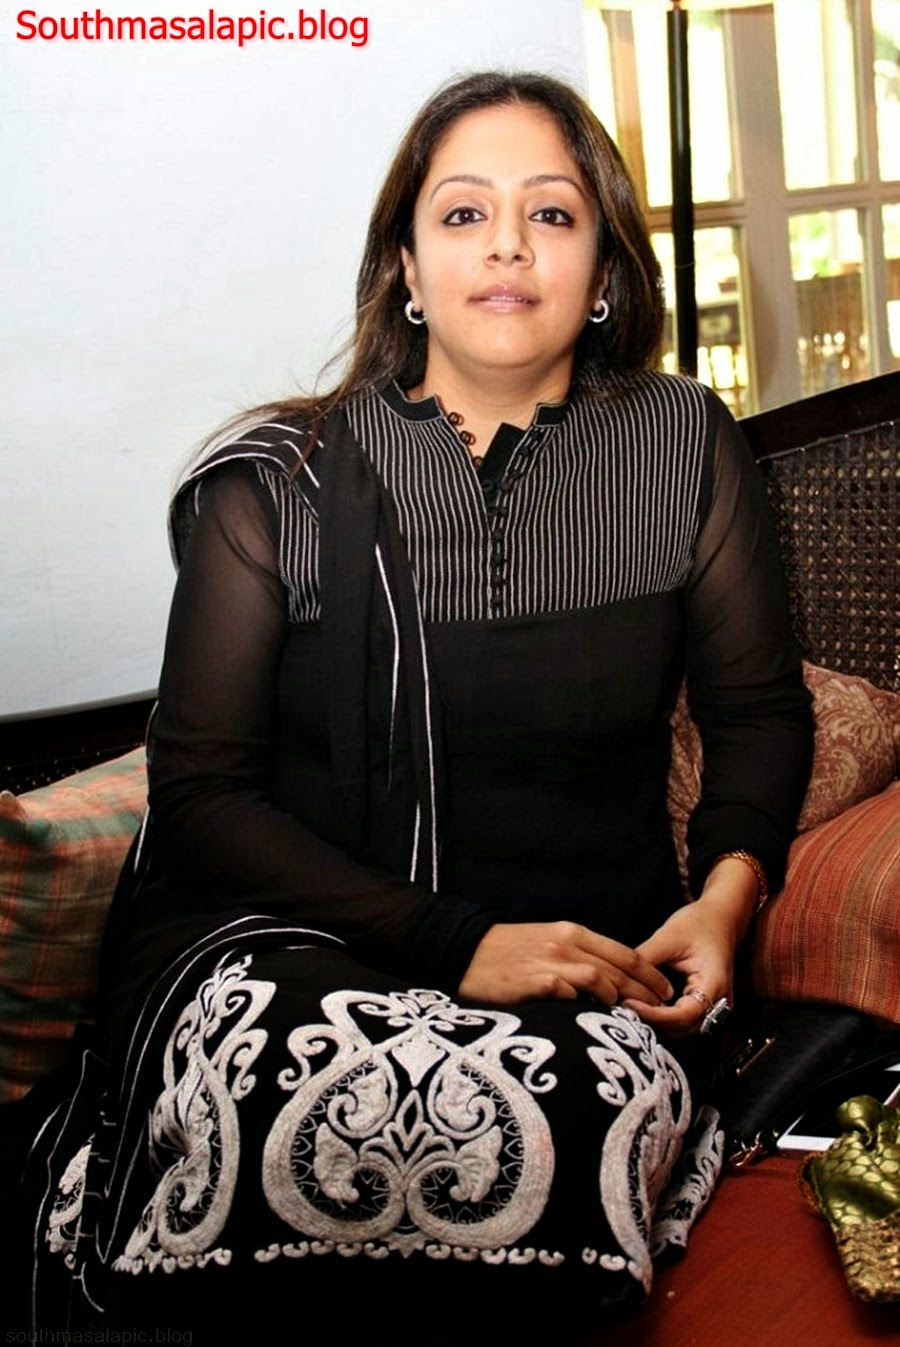 Tamil Actress Jyothika Hot Milf recent Photos showing sexy figure and